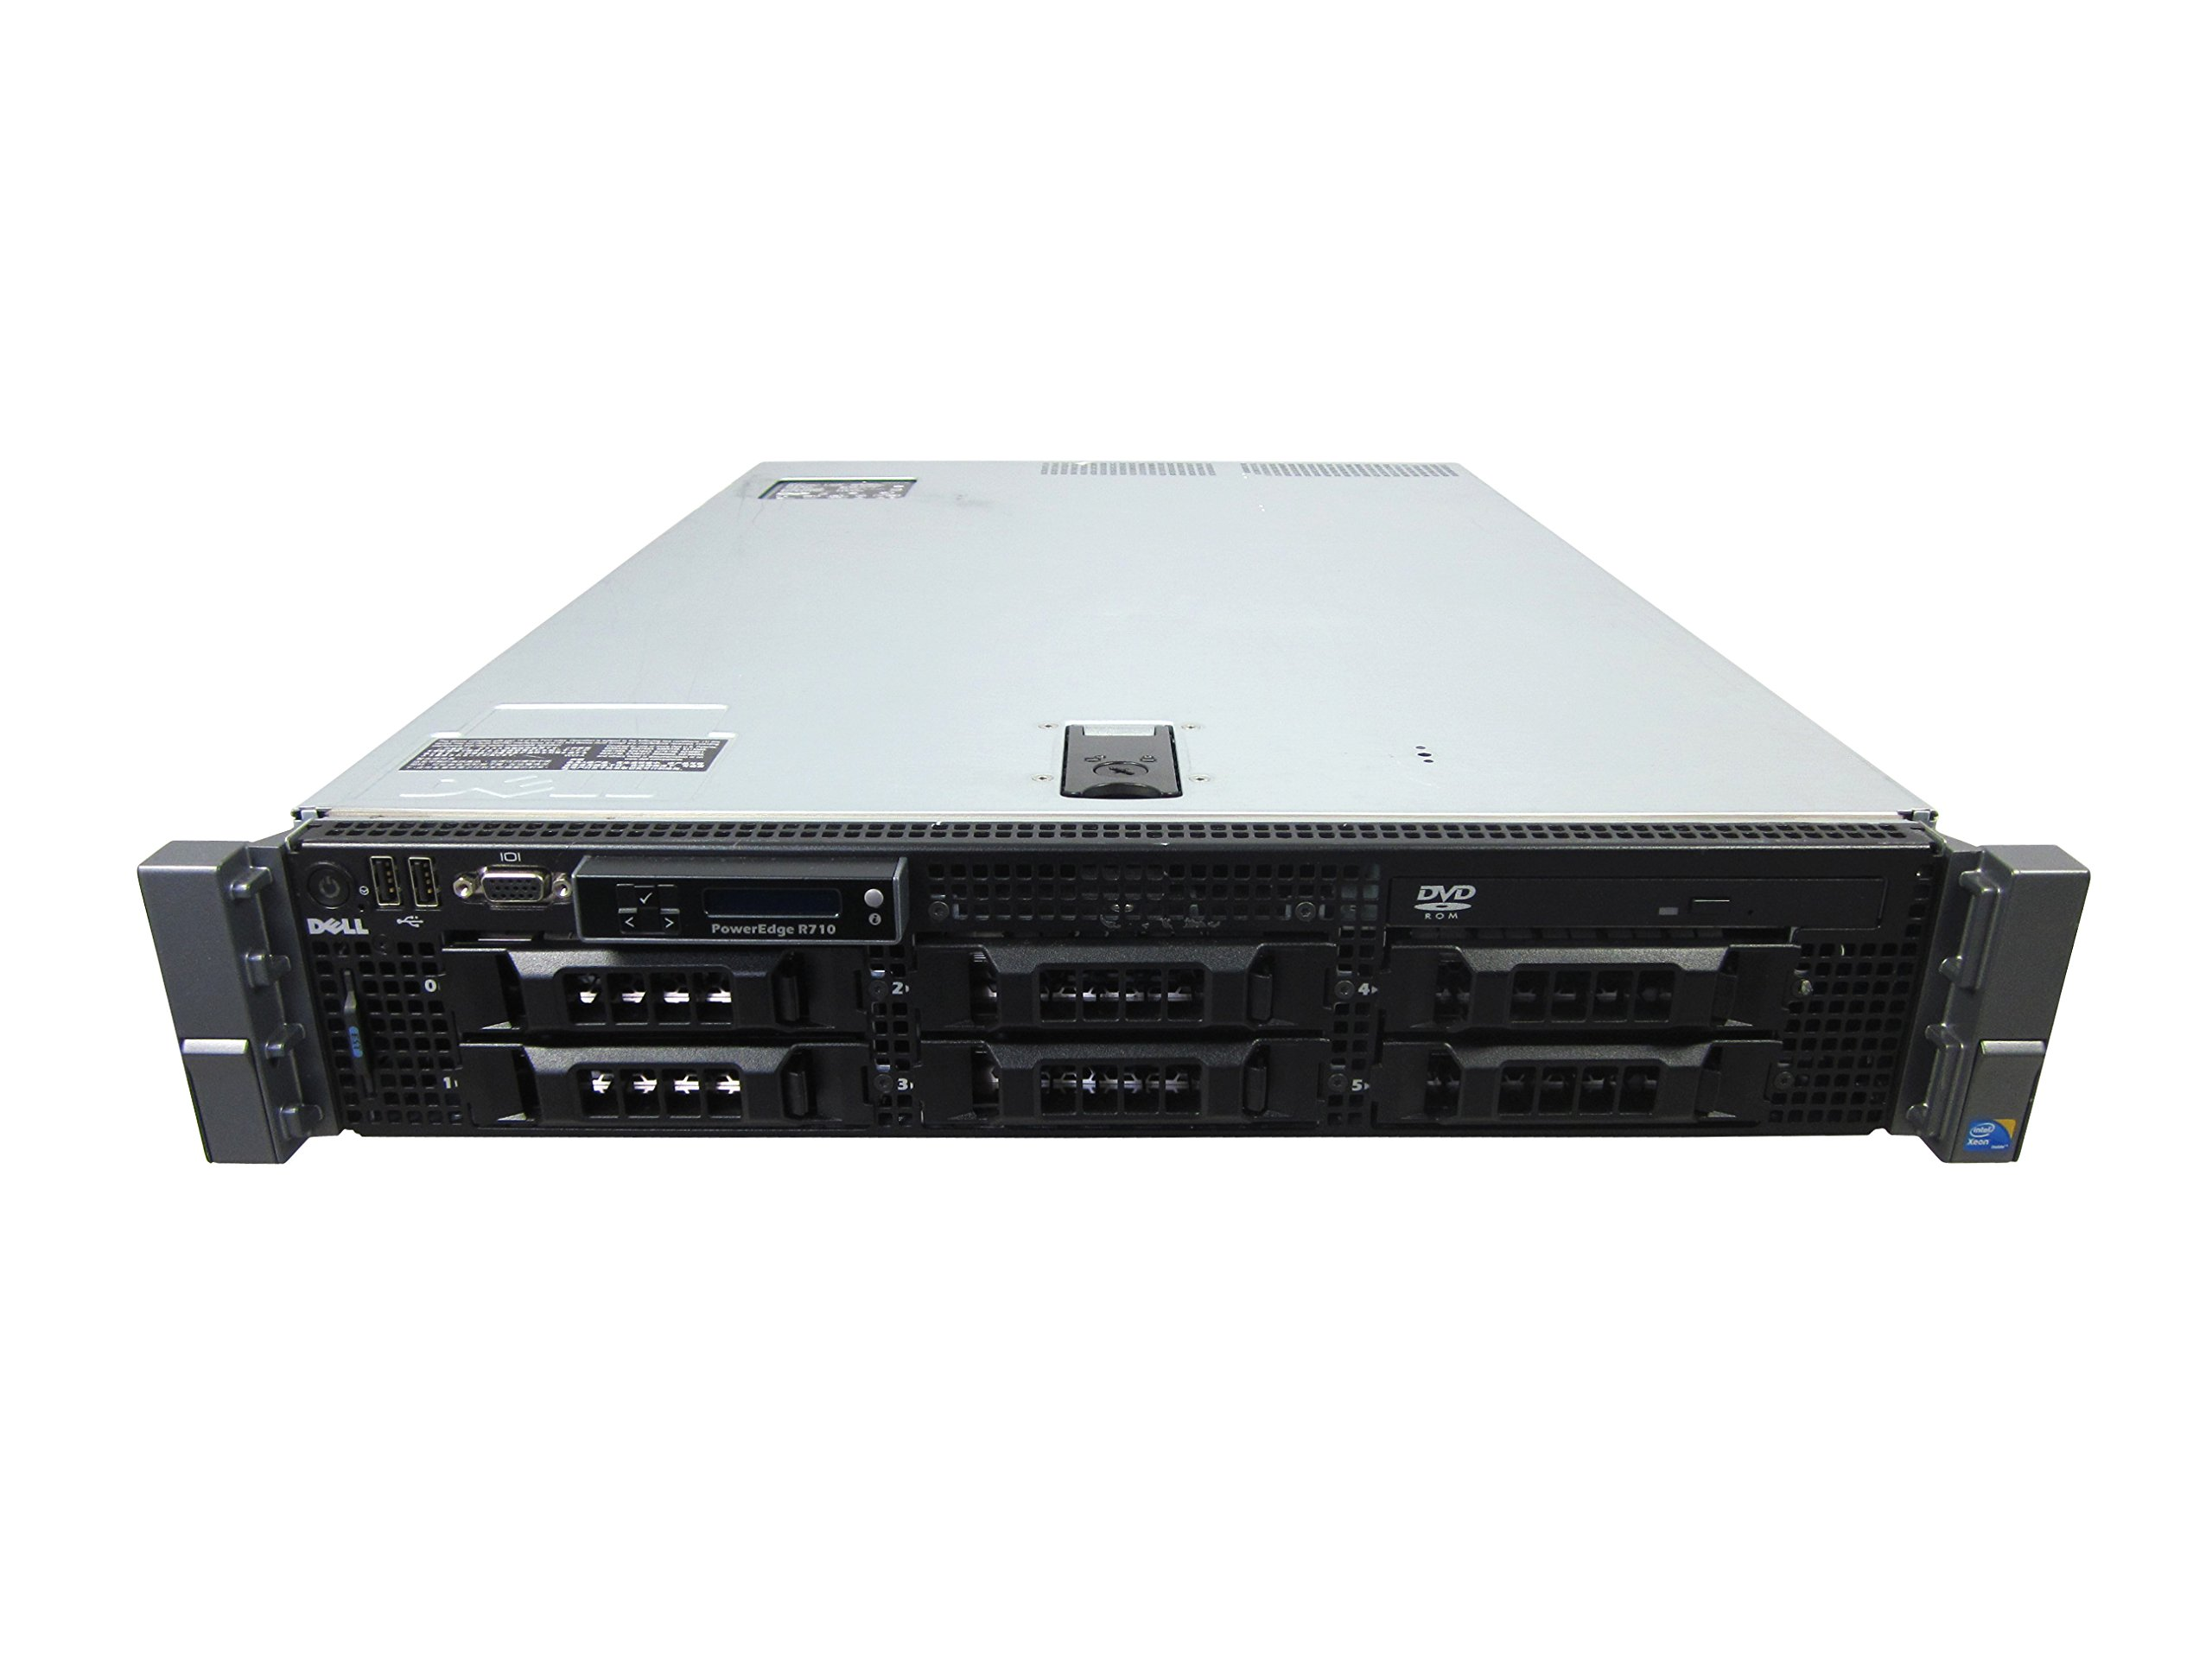 High-End Virtualization Server 12-Core 128GB RAM 12TB RAID Dell PowerEdge R710 (Certified Refurbished) by TechMikeNY (Image #2)